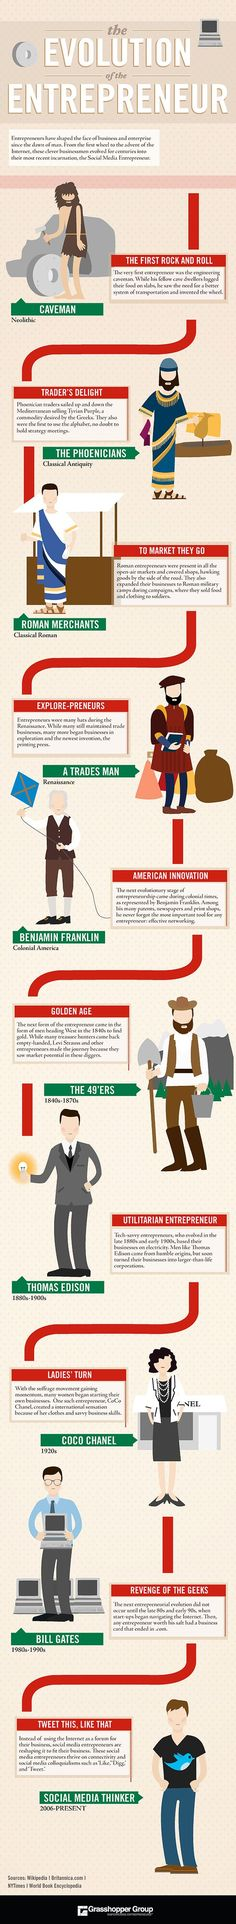 The evolution ef the #entrepreneur #infography par Grasshopper.com